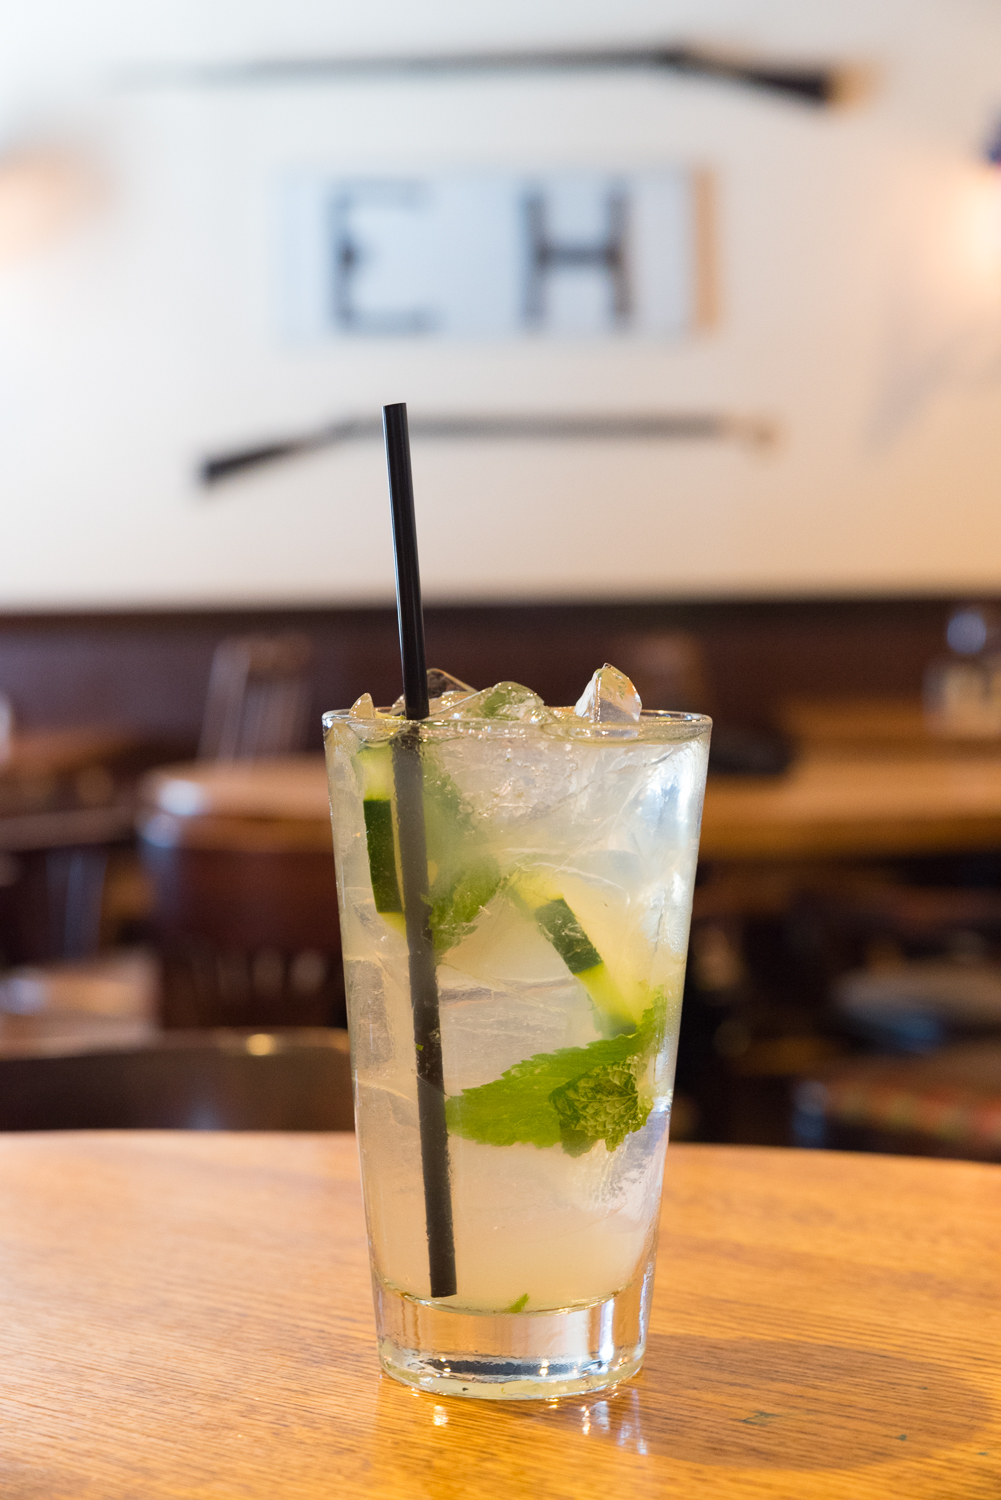 Cucumber mojito with local maple syrup (Maple Grove Farms) / Image: Sherry Lachelle Photography